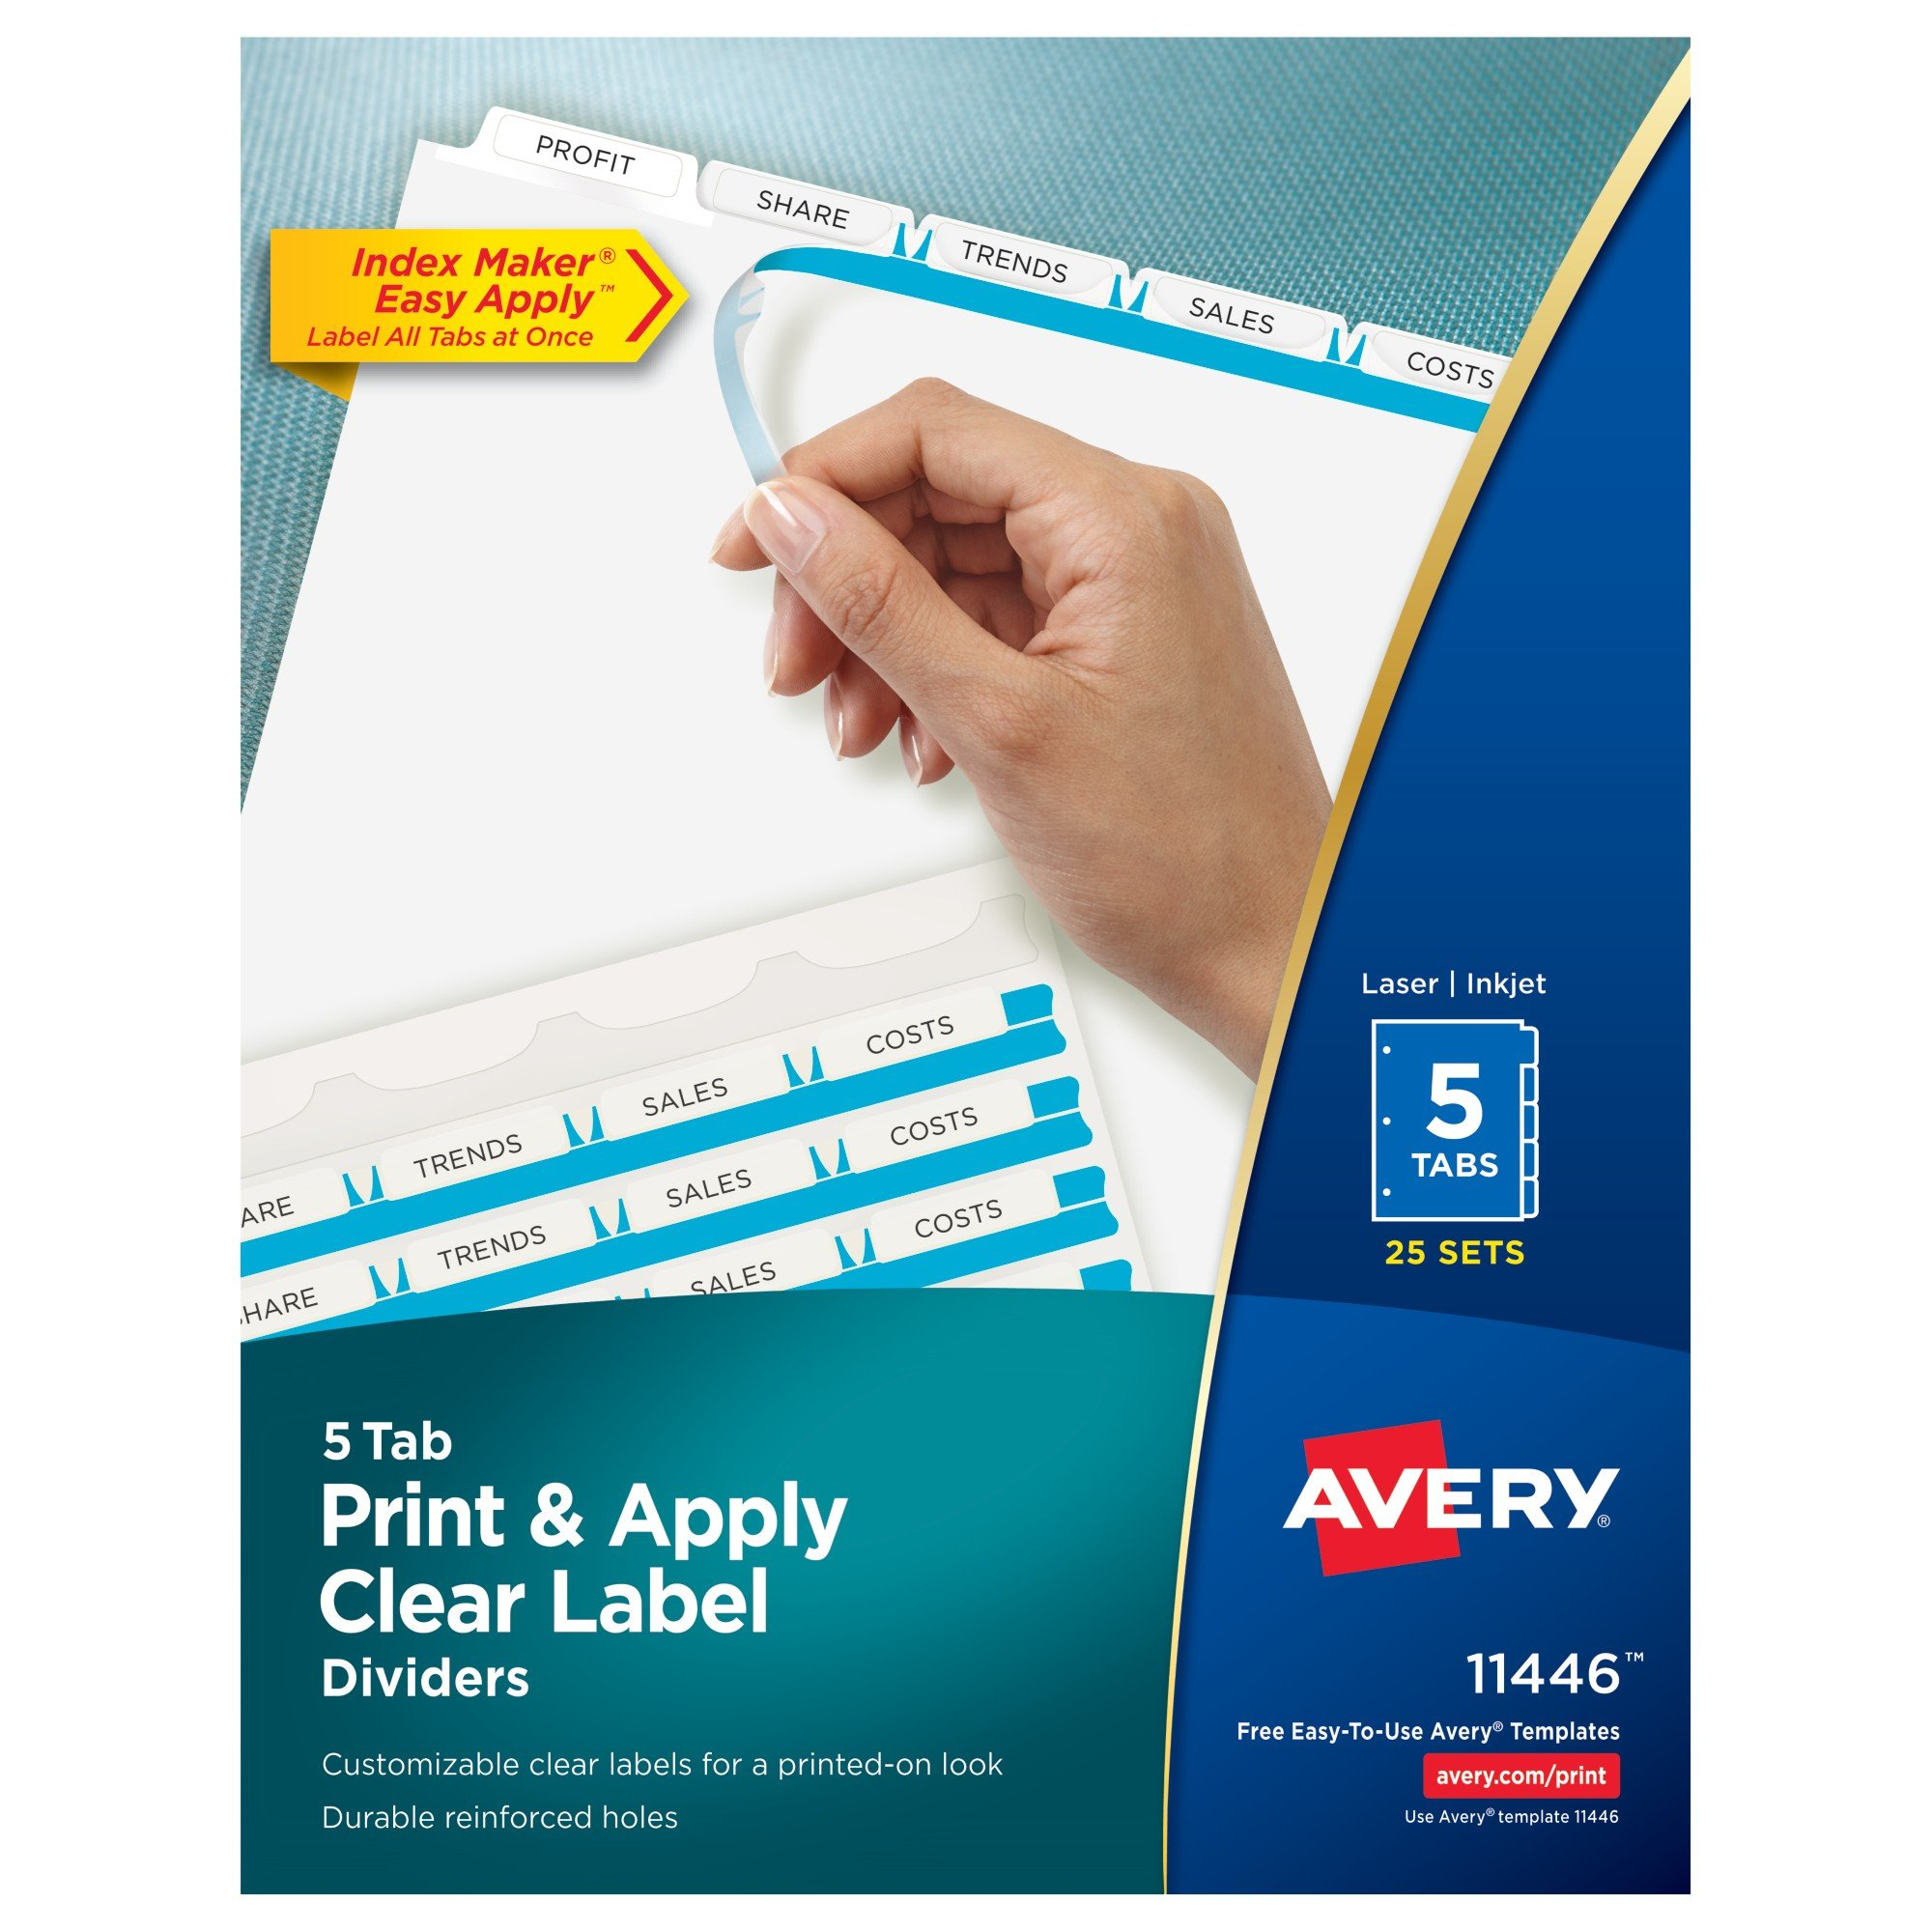 Avery Print & Apply Clear Label Dividers, Index Maker Easy Apply Printable Label Strip, 5 White Tabs, 25 Sets, Case Pack of 6 (11446)